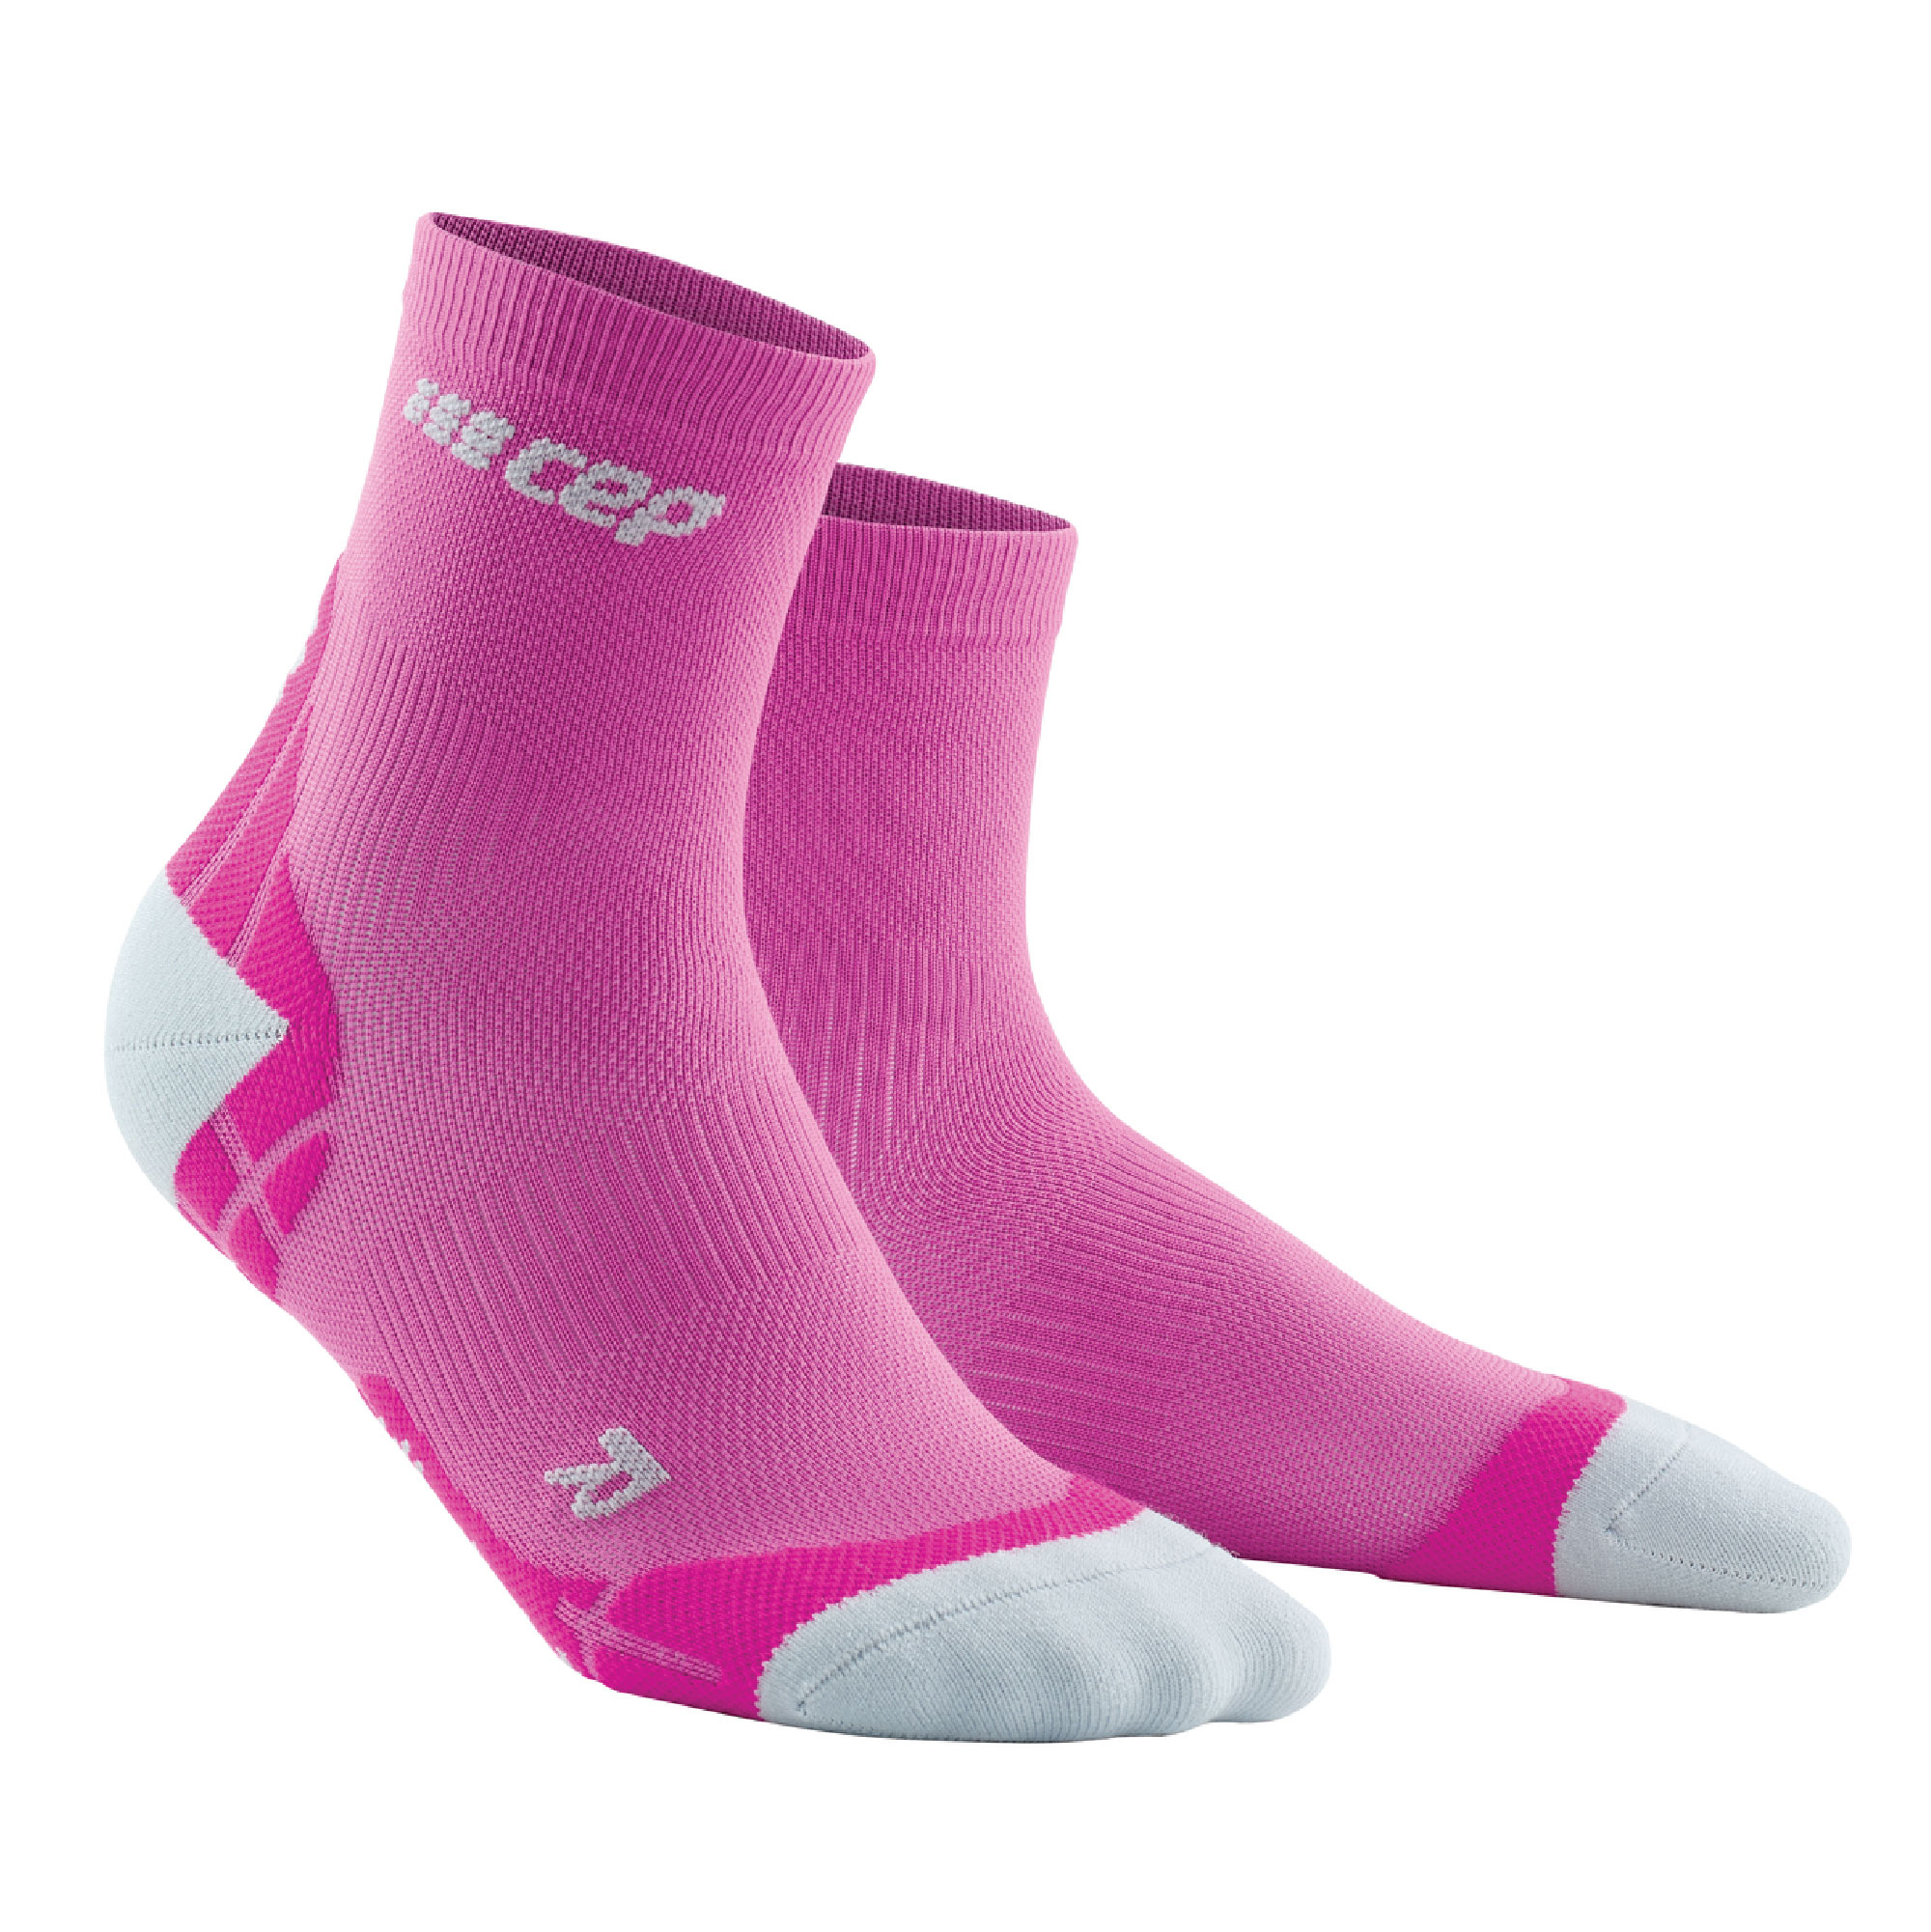 ULTRALIGHT SHORT SOCKS | WOMEN